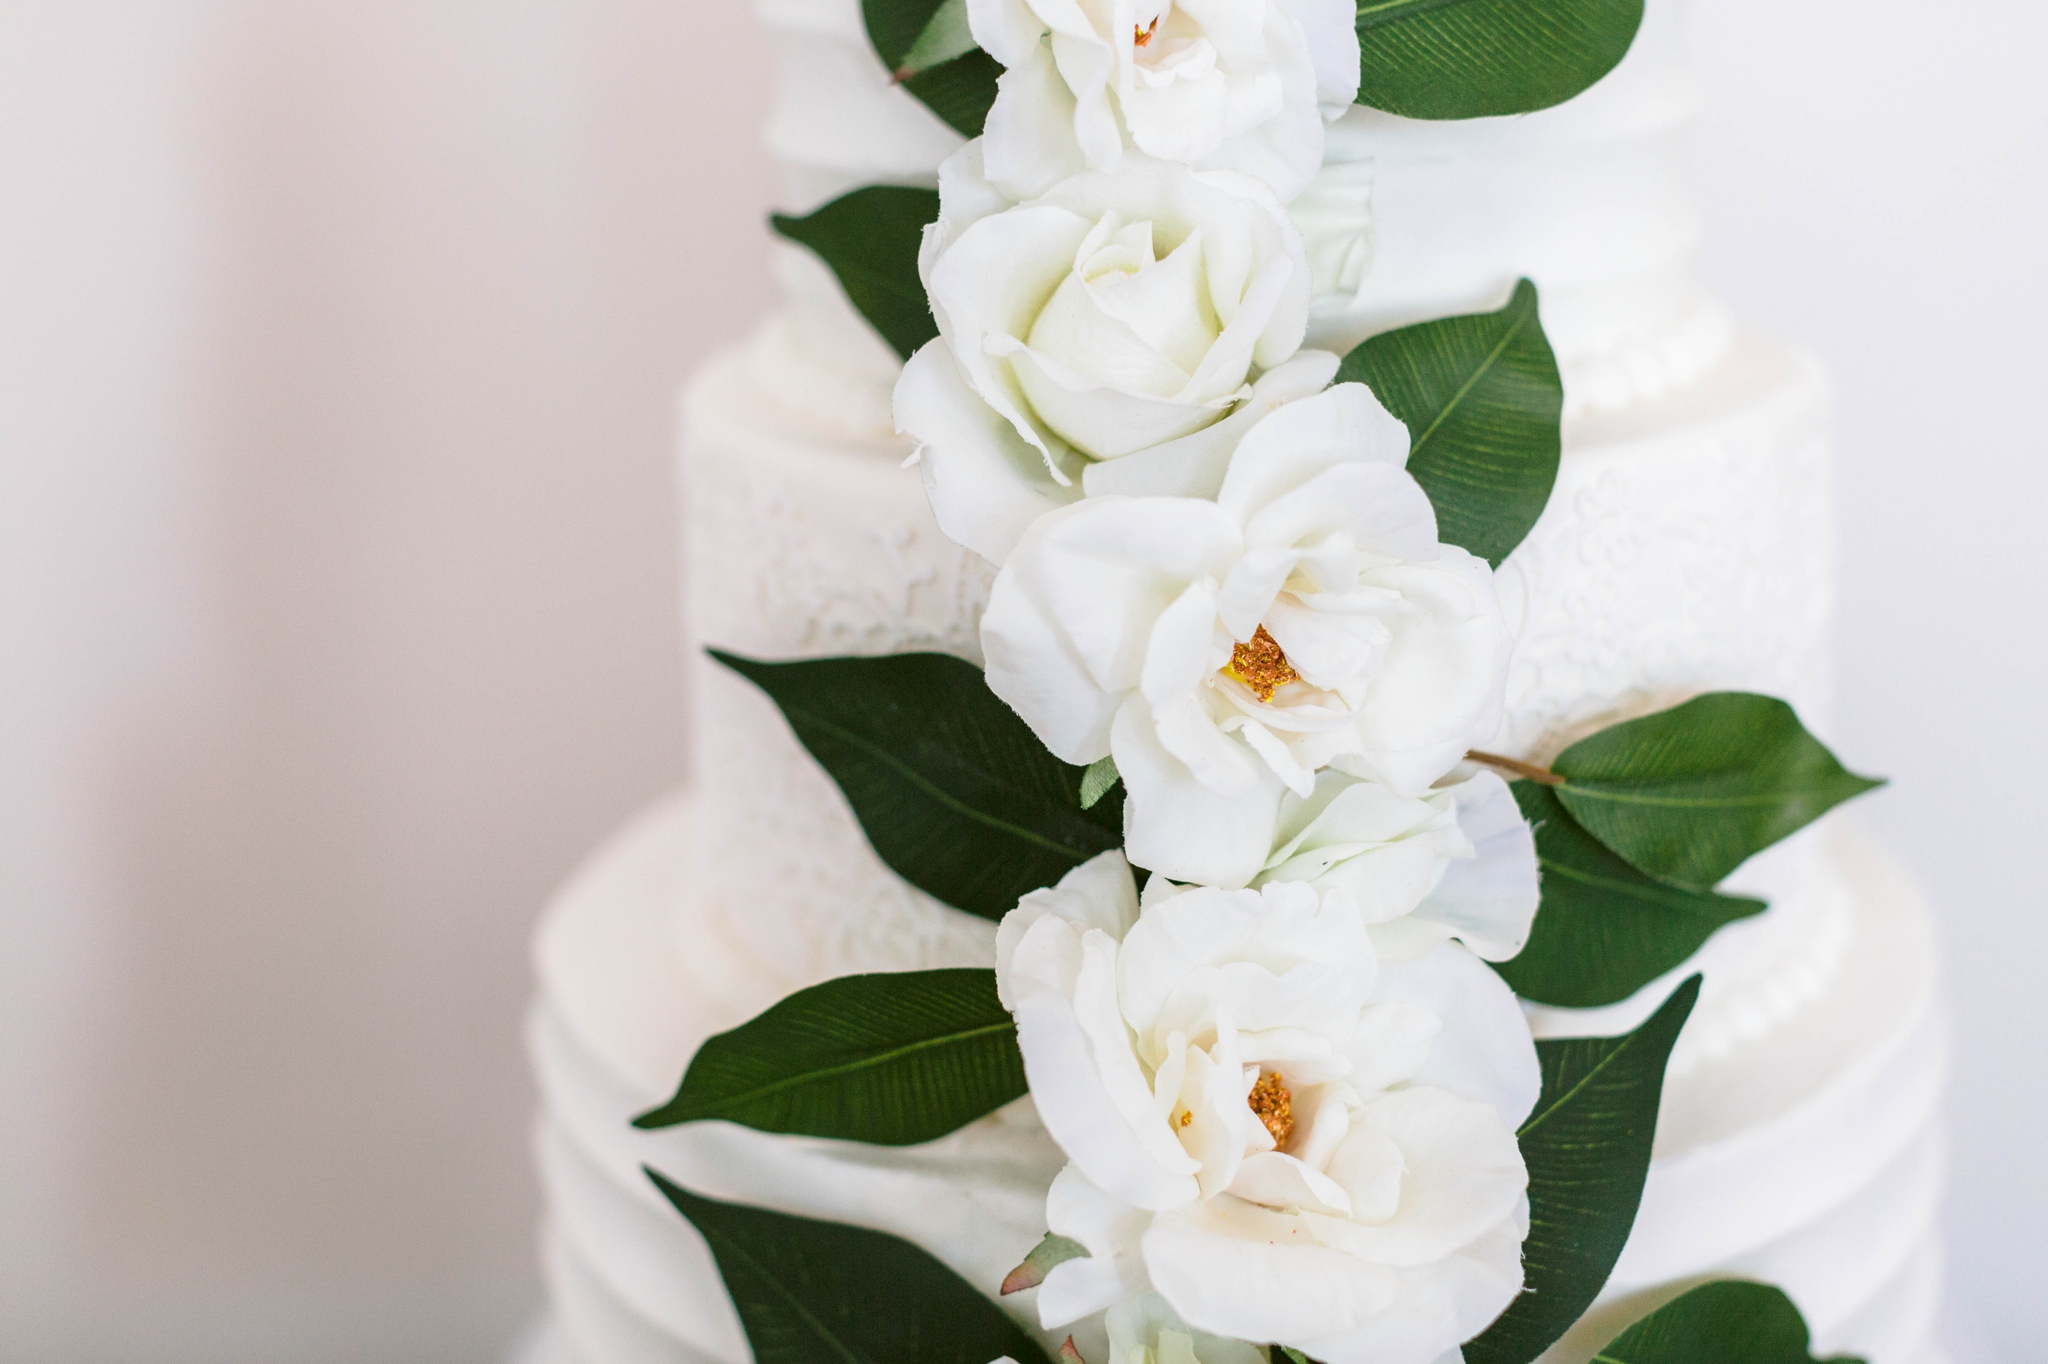 wedding cake table on an all white antique dresser with an all white cake decorated with greenery - luxury cake table inspiration - honolulu oahu hawaii wedding photographer - johanna dye photography